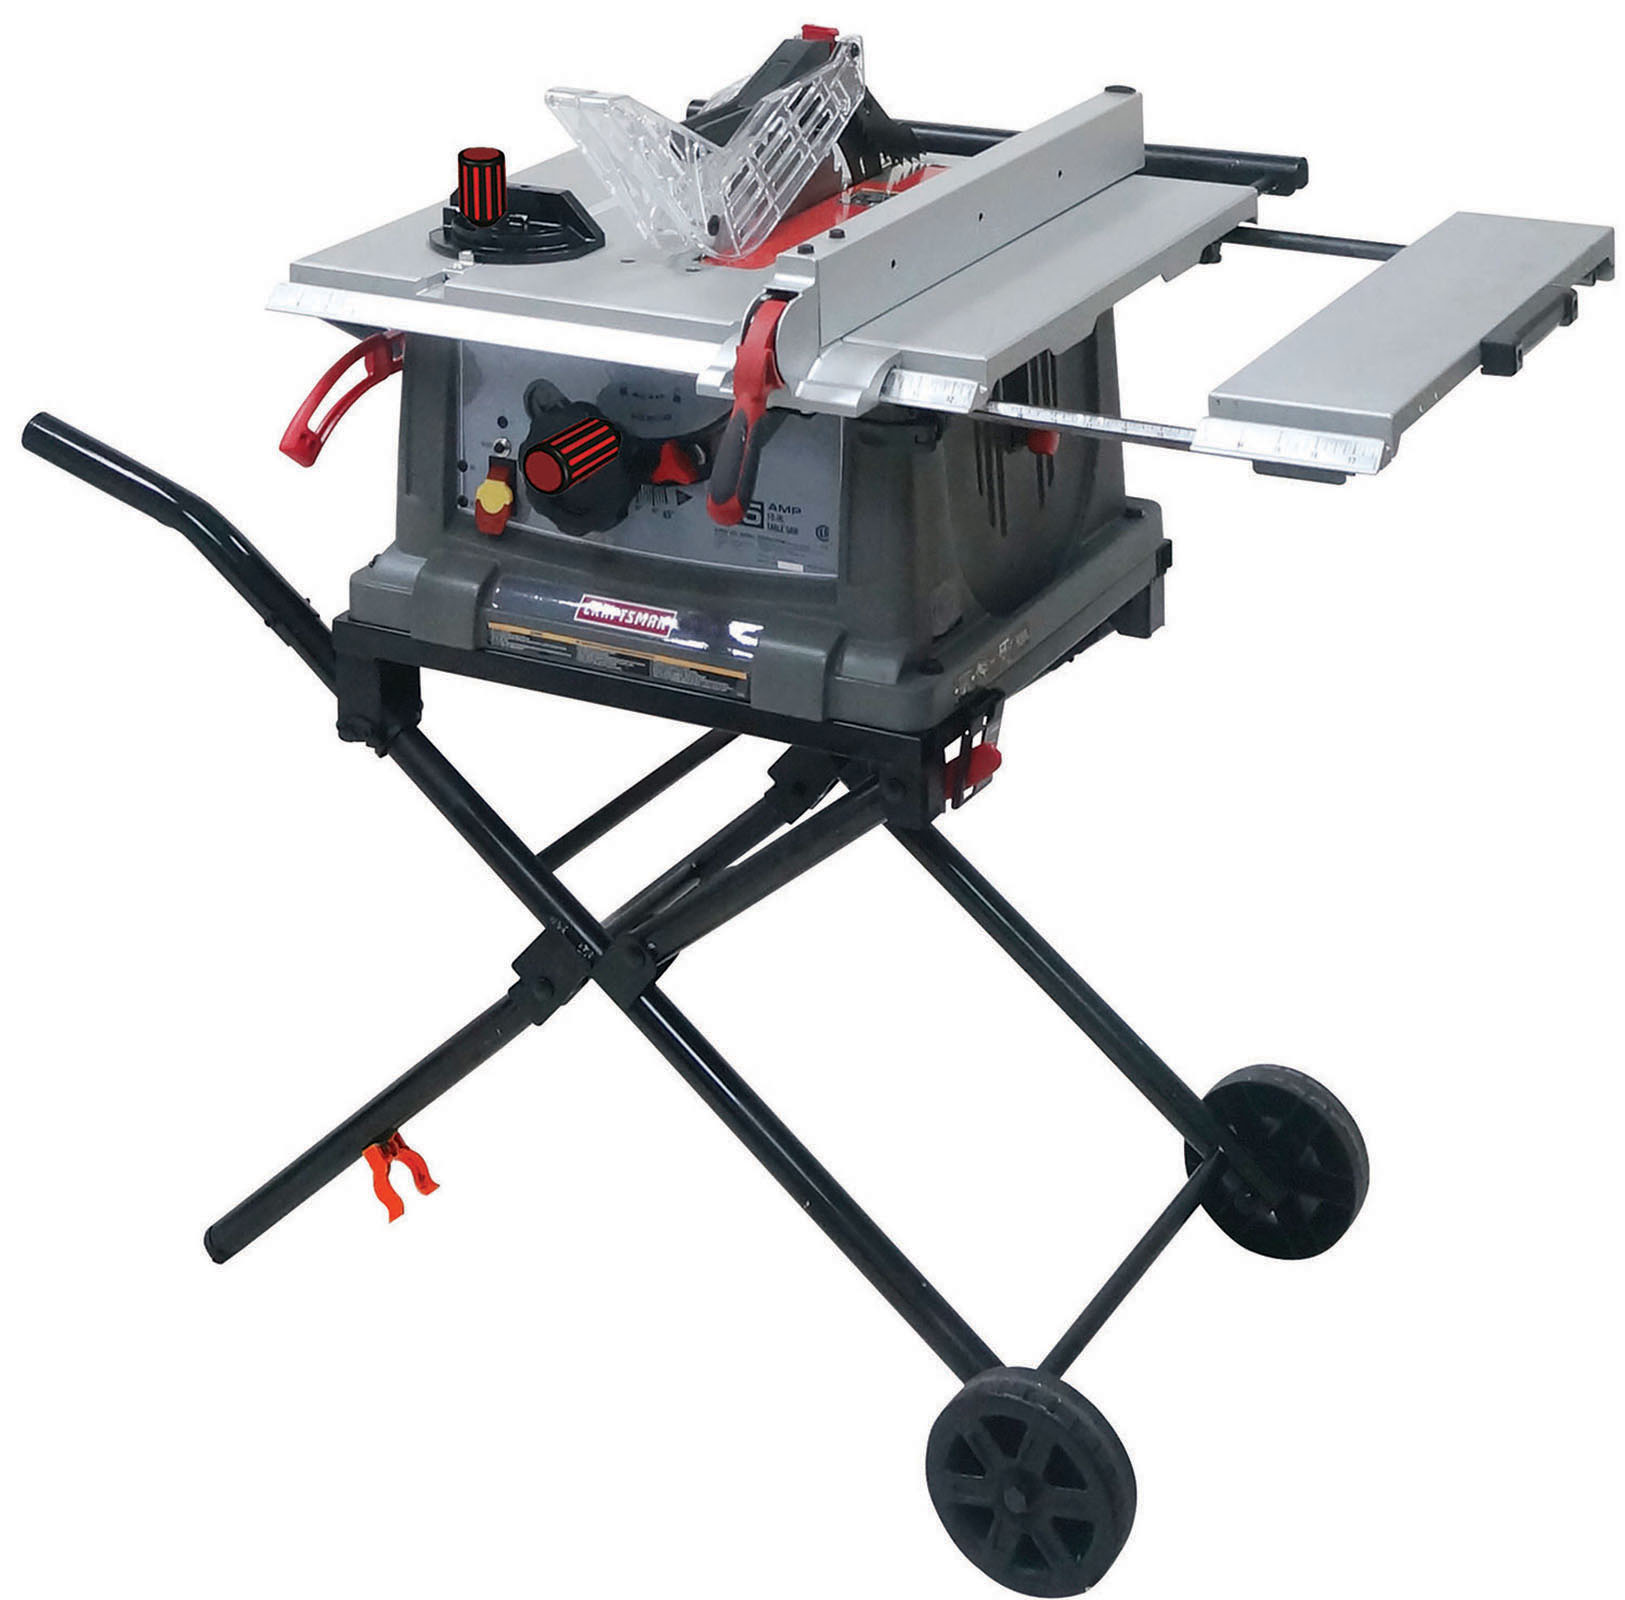 small resolution of craftsman table saws craftsman table saw model 137 wiring diagram for craftsman table saw 137 248830